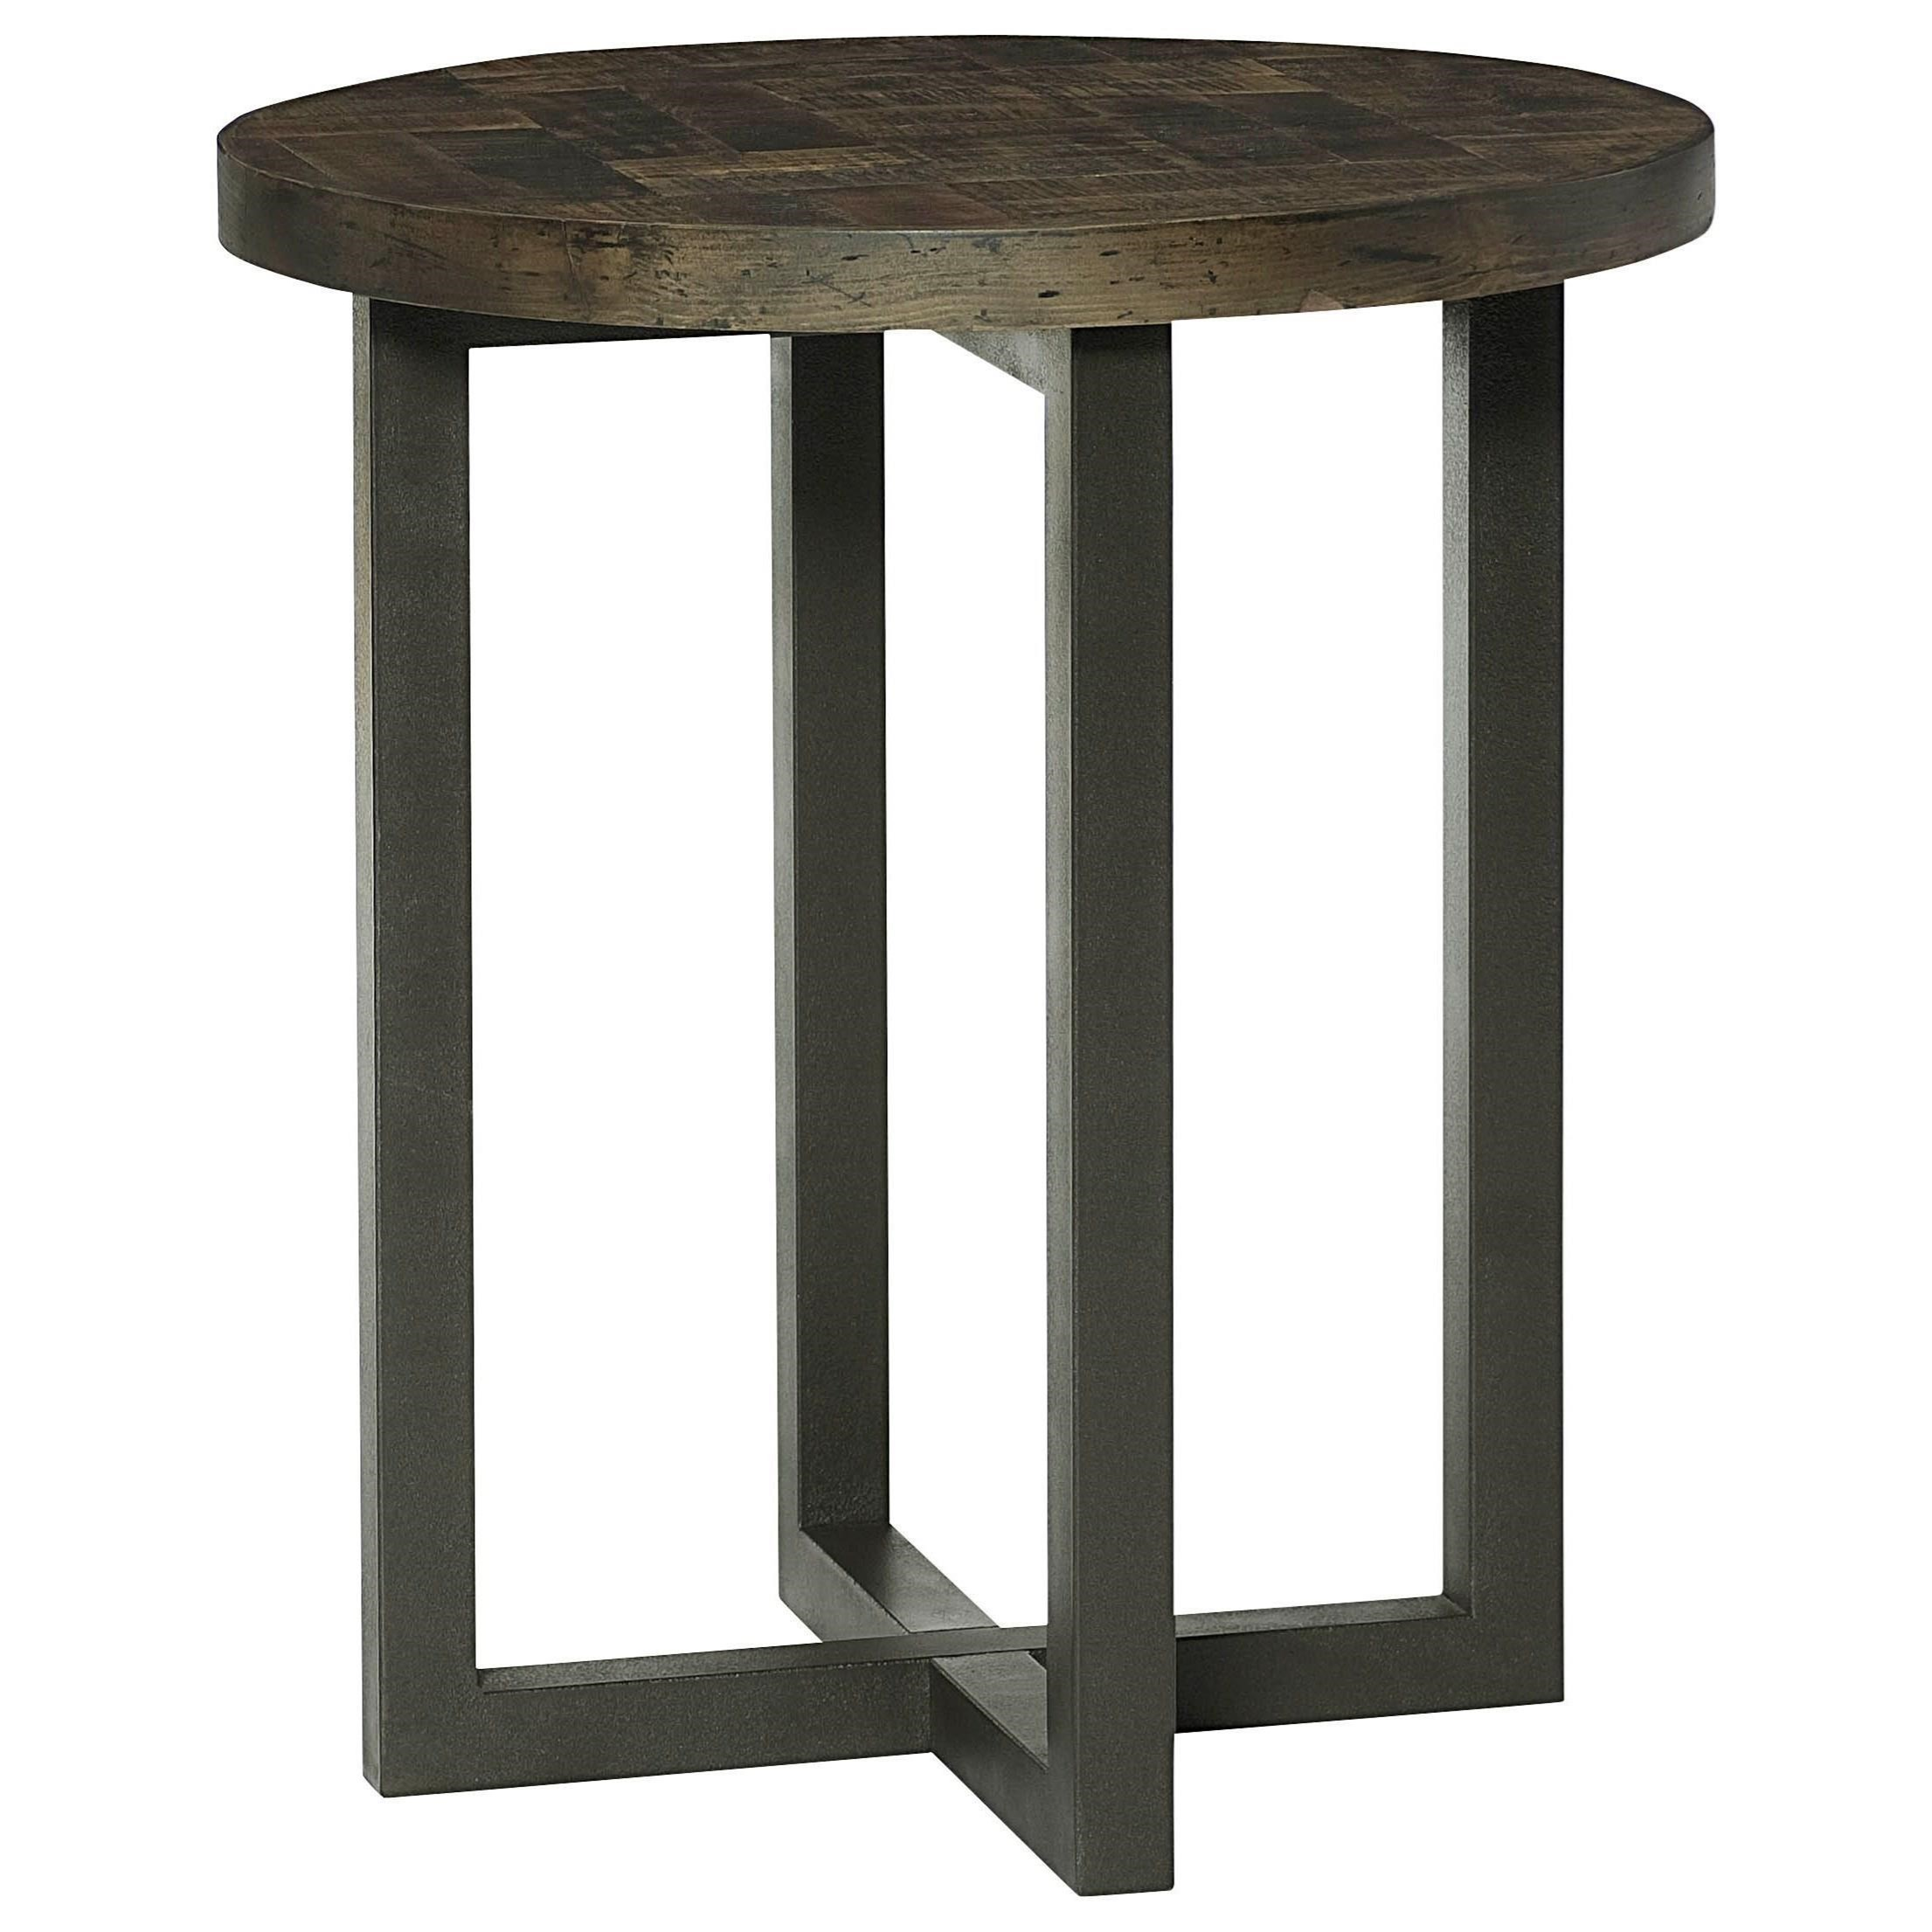 Hammary District Round Accent Table - Item Number: 440-916